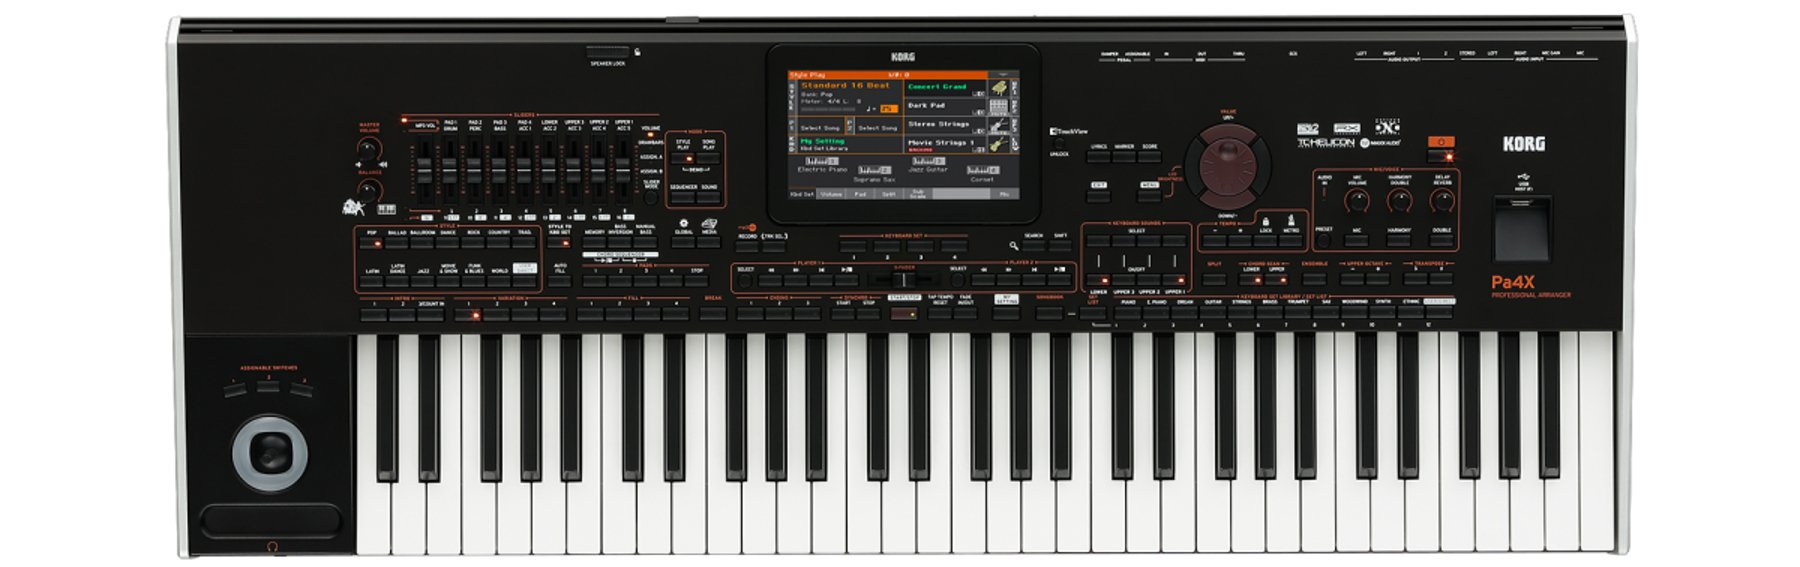 61-Key Professional Arranger Keyboard